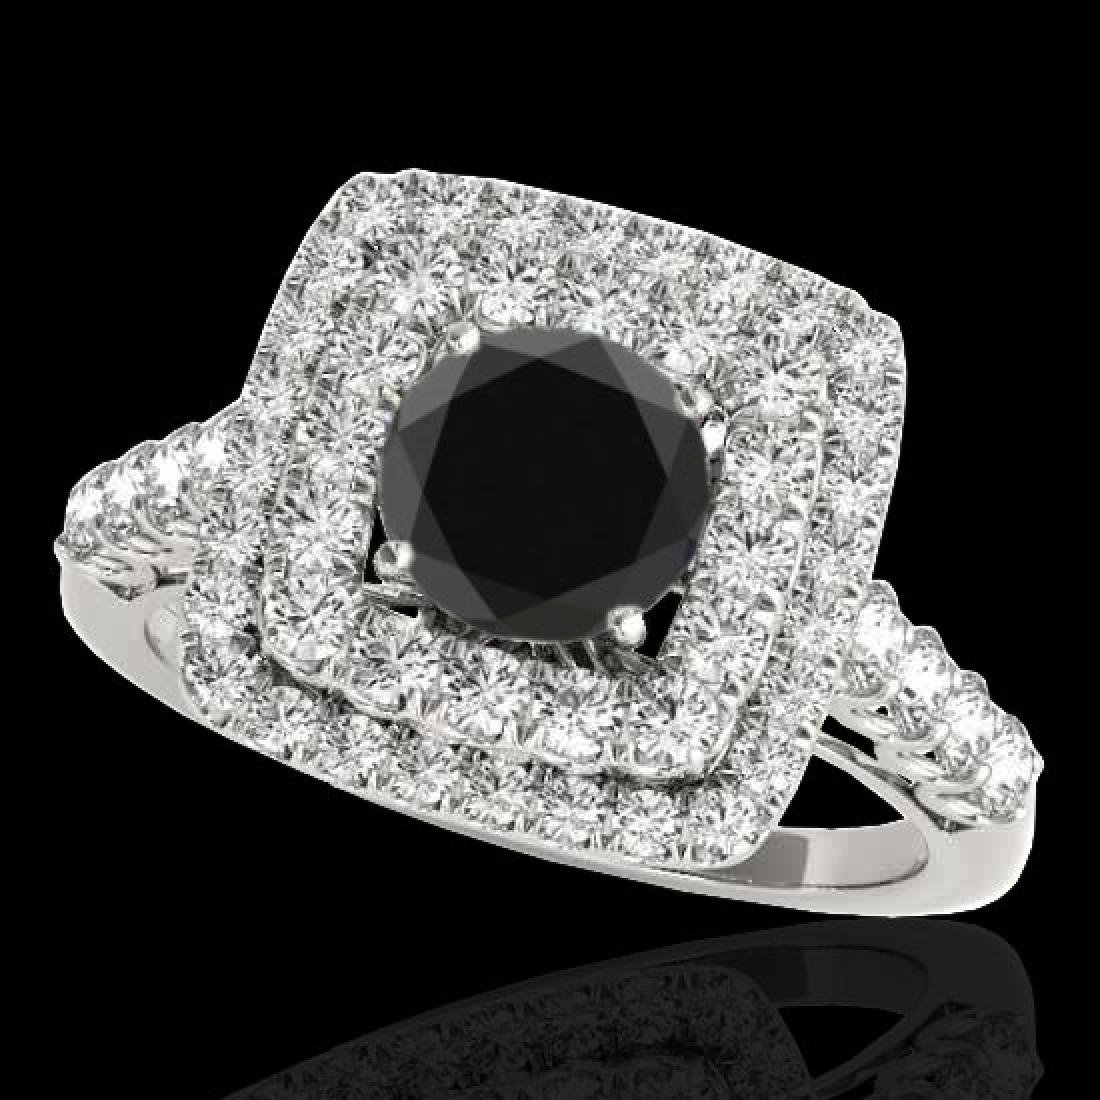 2.3 CTW Certified VS Black Diamond Solitaire Halo Ring